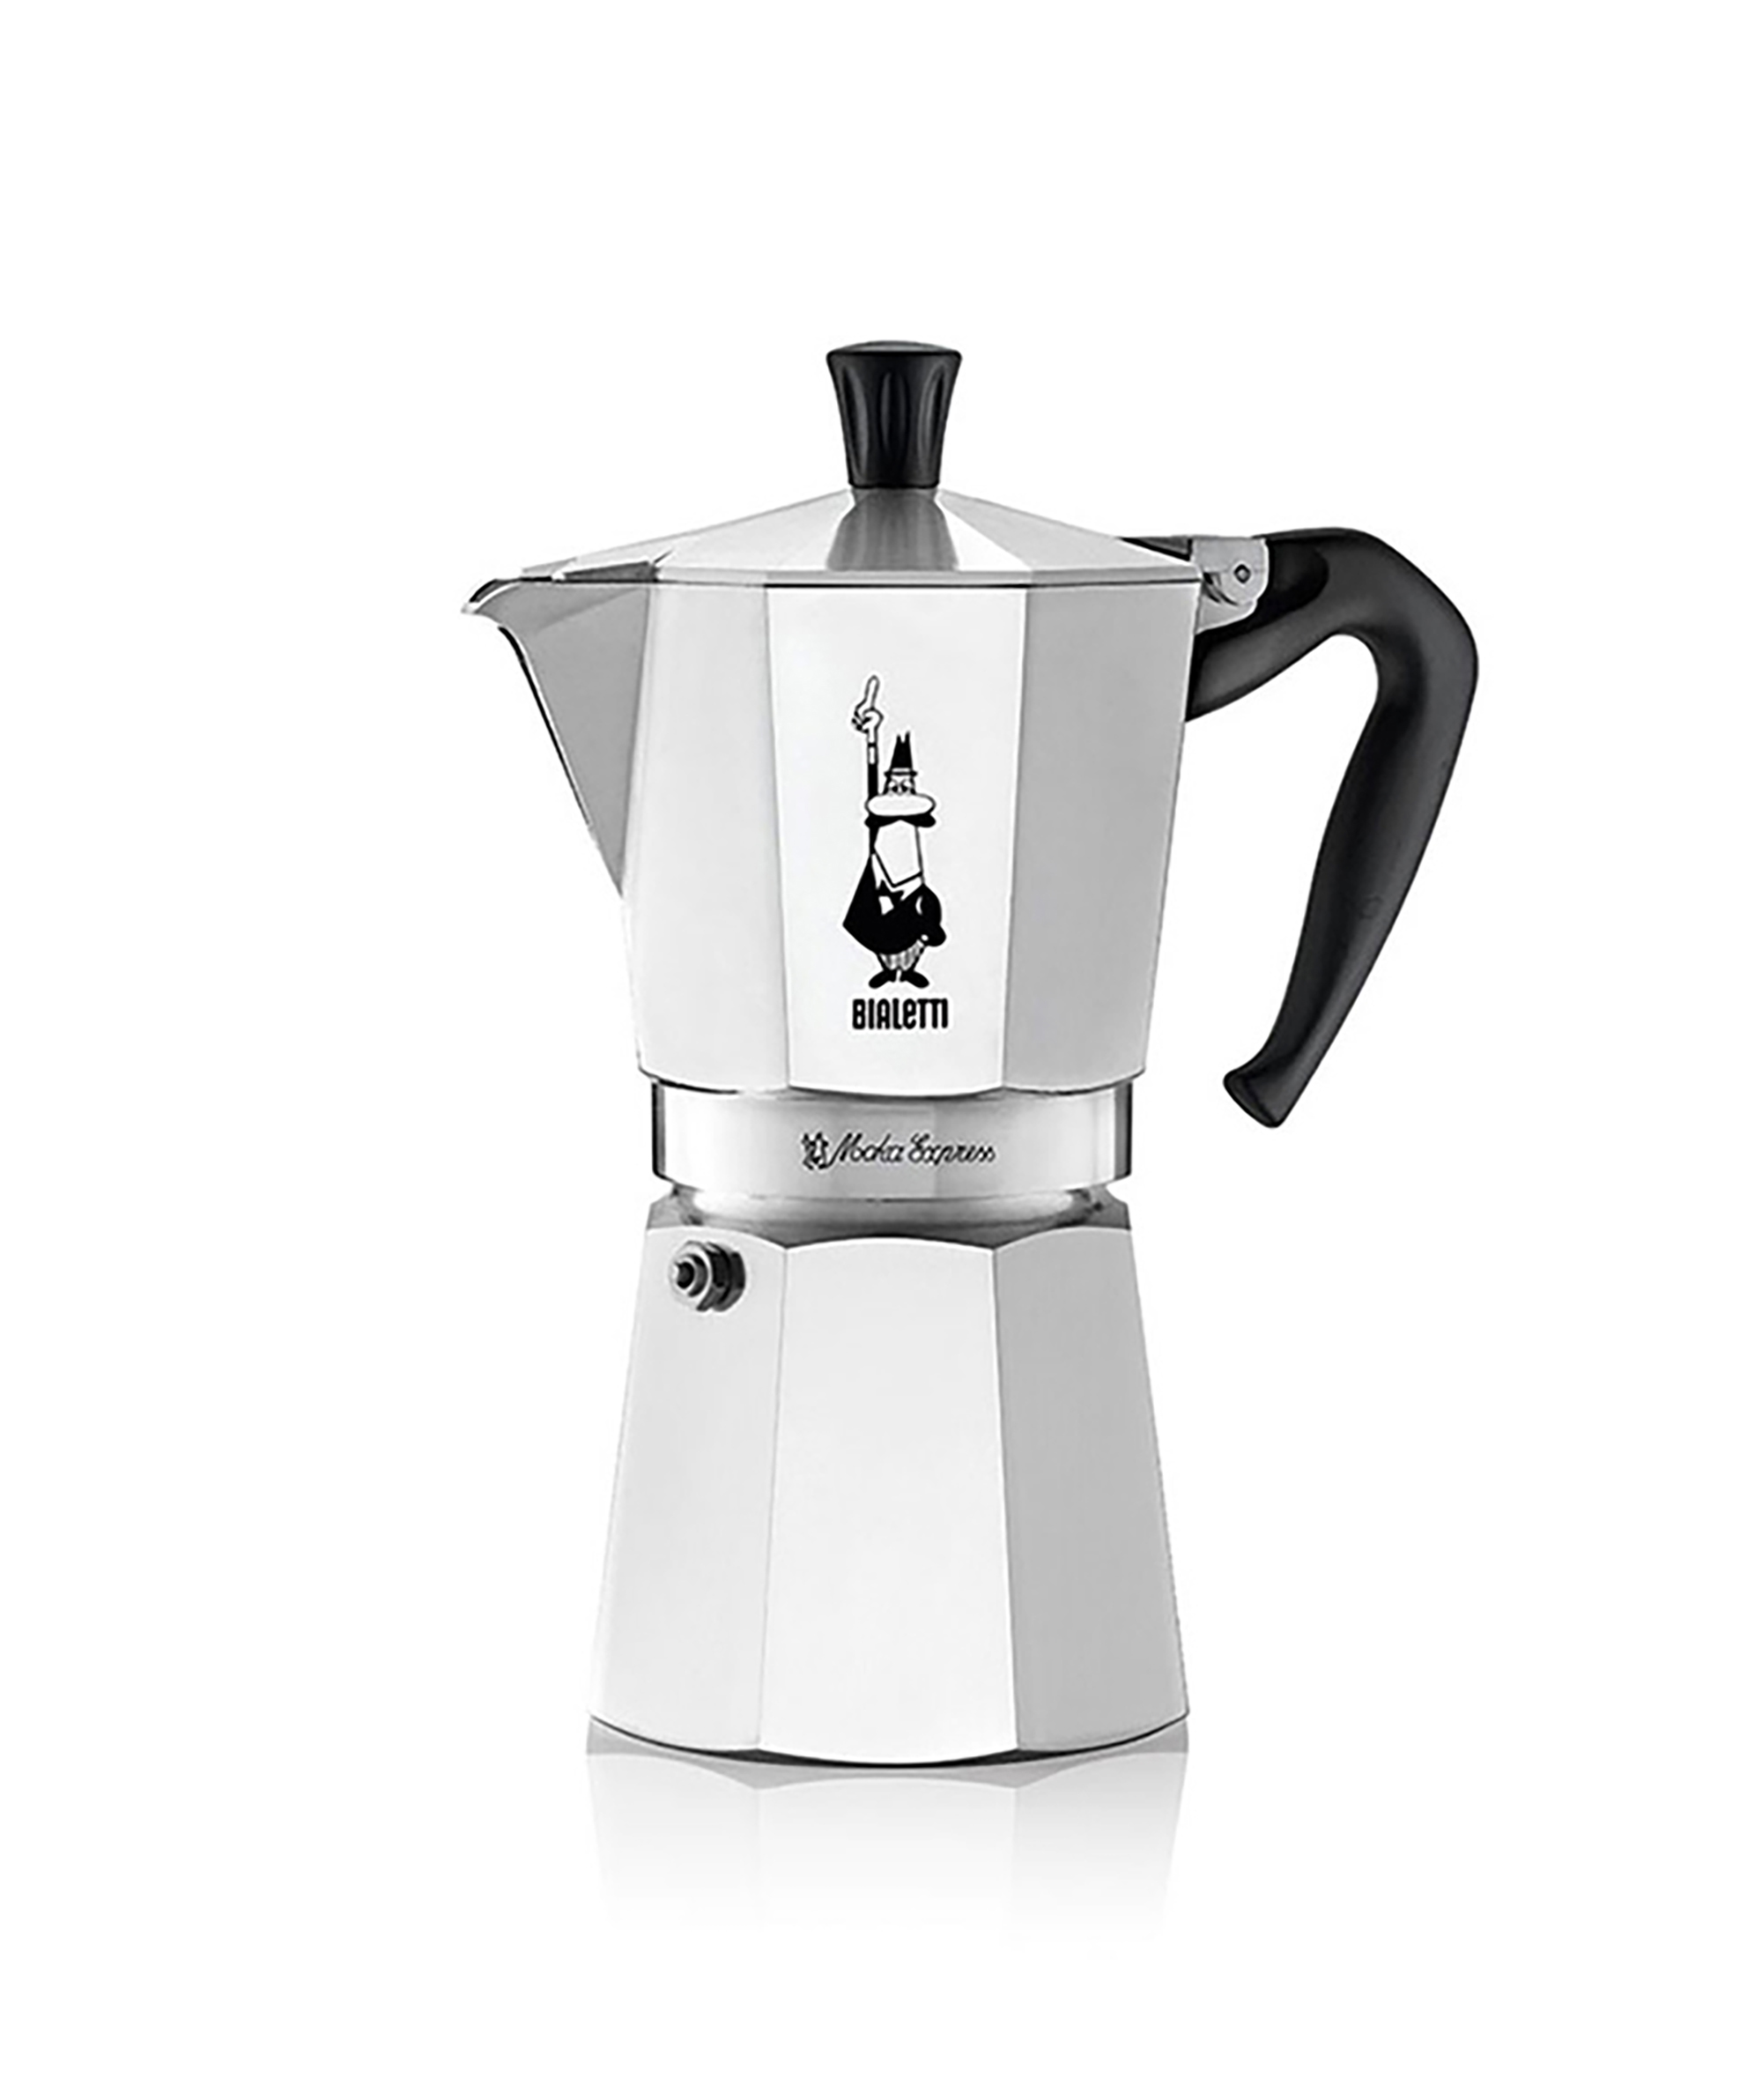 Image of Bialetti Moka Express 6-Cup Stovetop